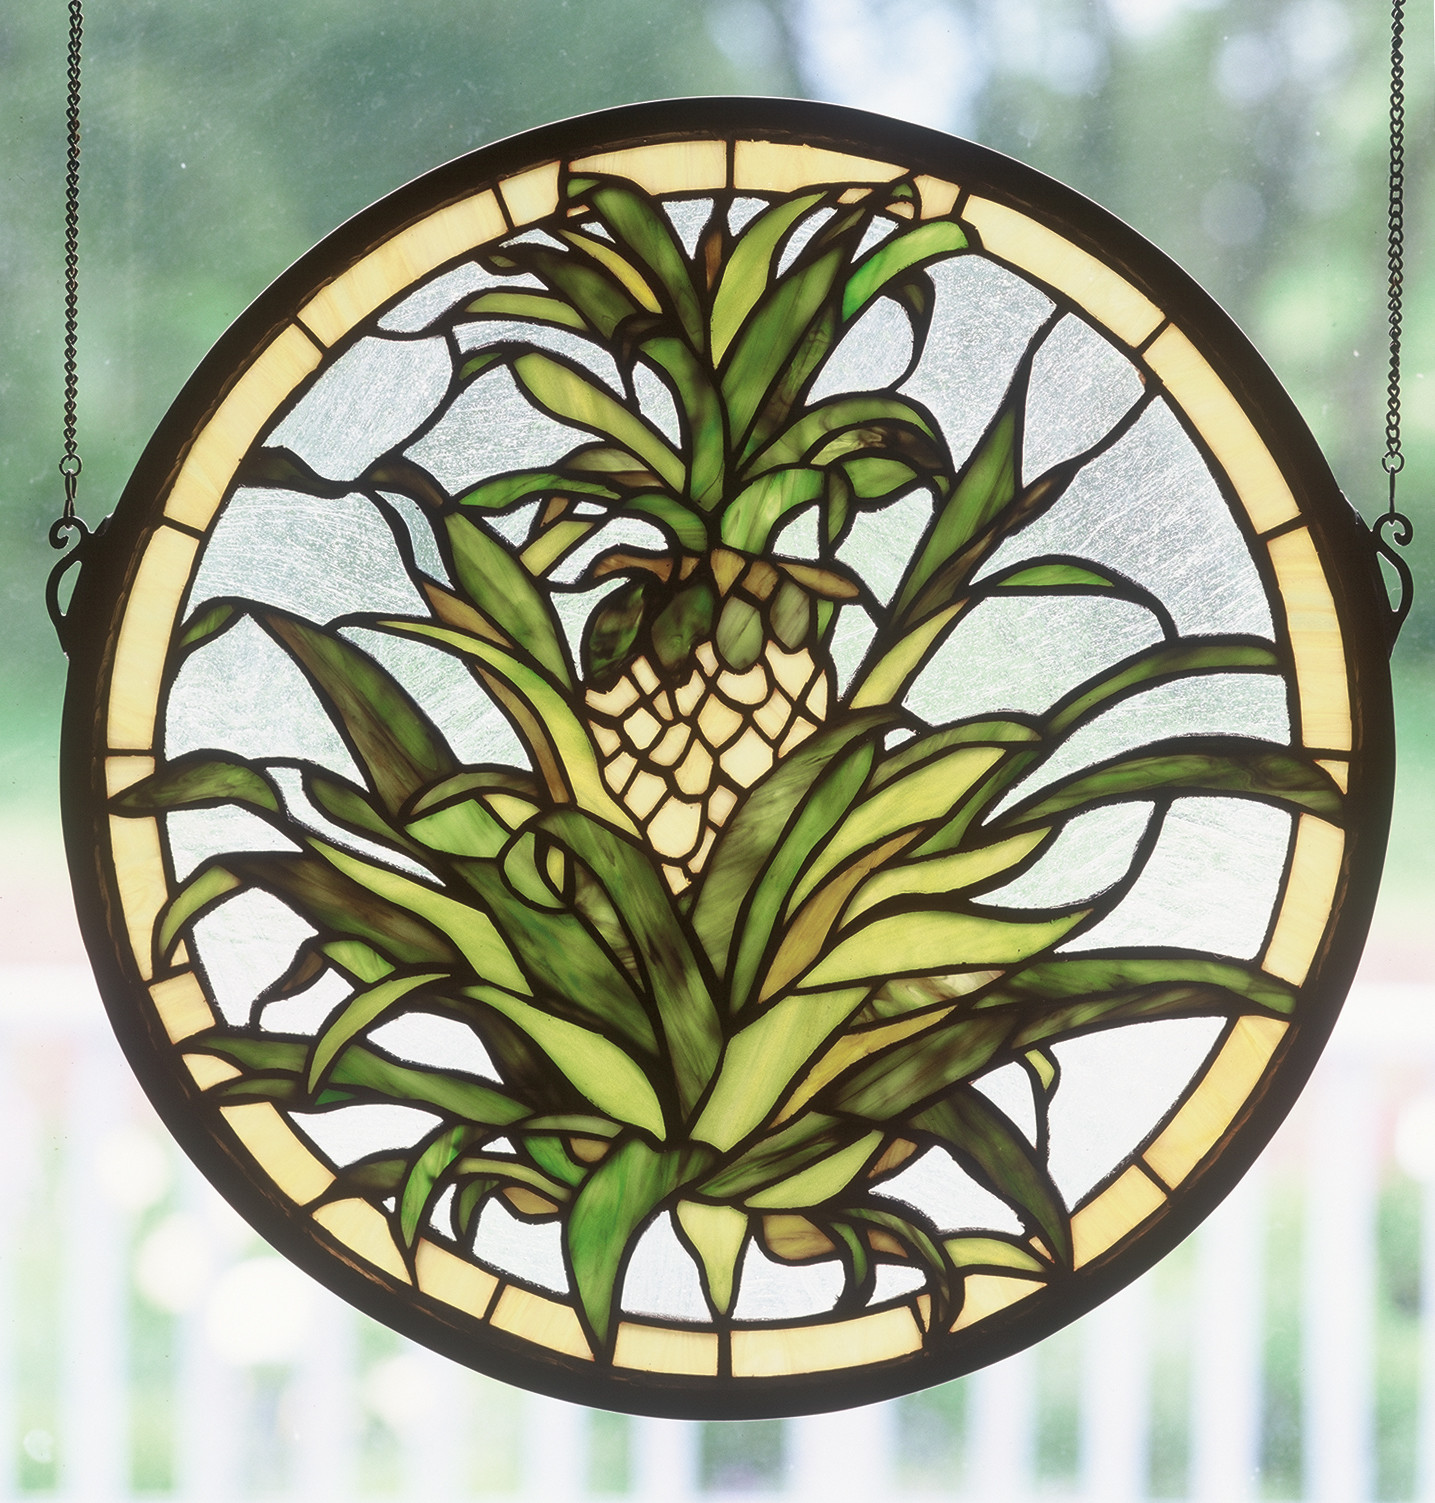 Meyda Tiffany 48550 Stained Glass Tiffany Window from the Country Living Collection